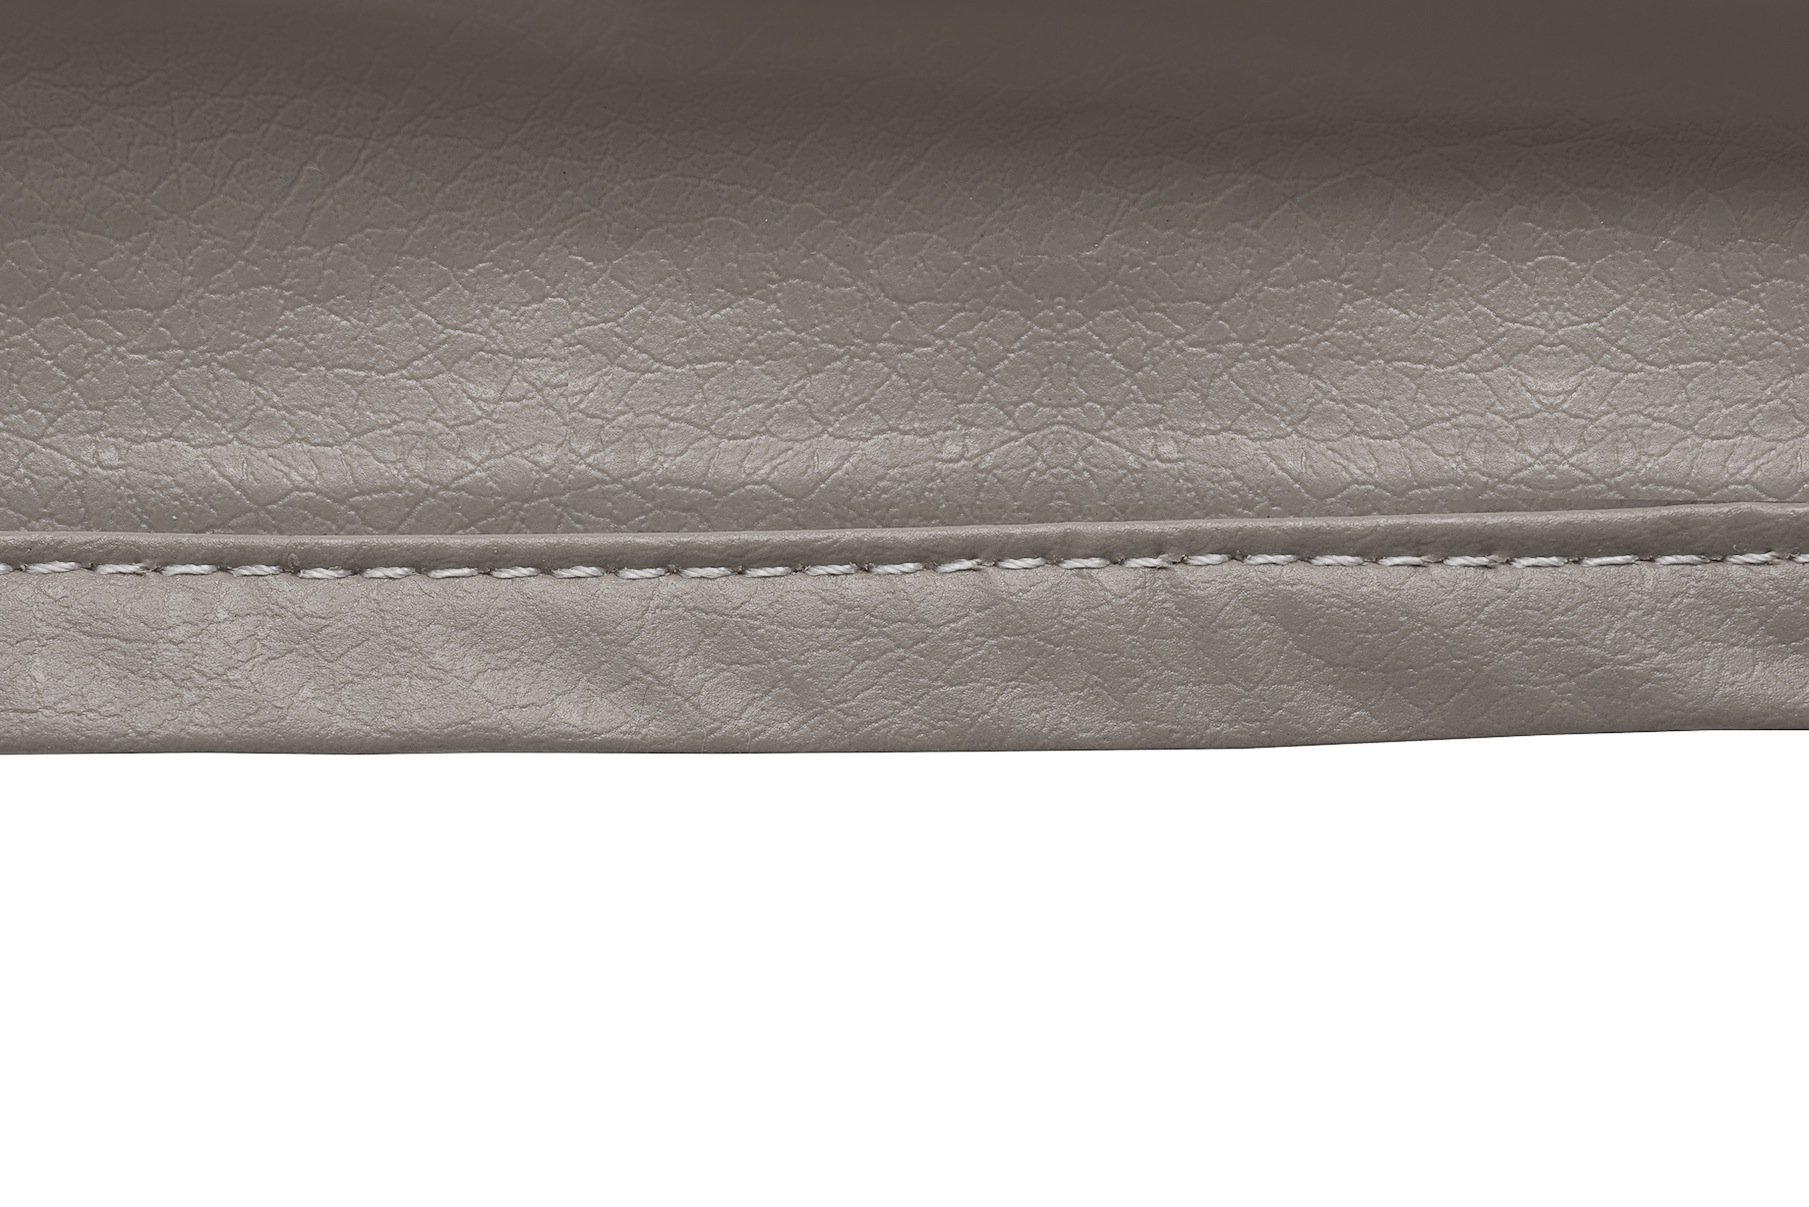 Protective Covers Weatherproof 2 Seat Glider Cover, Gray by Protective Covers (Image #3)